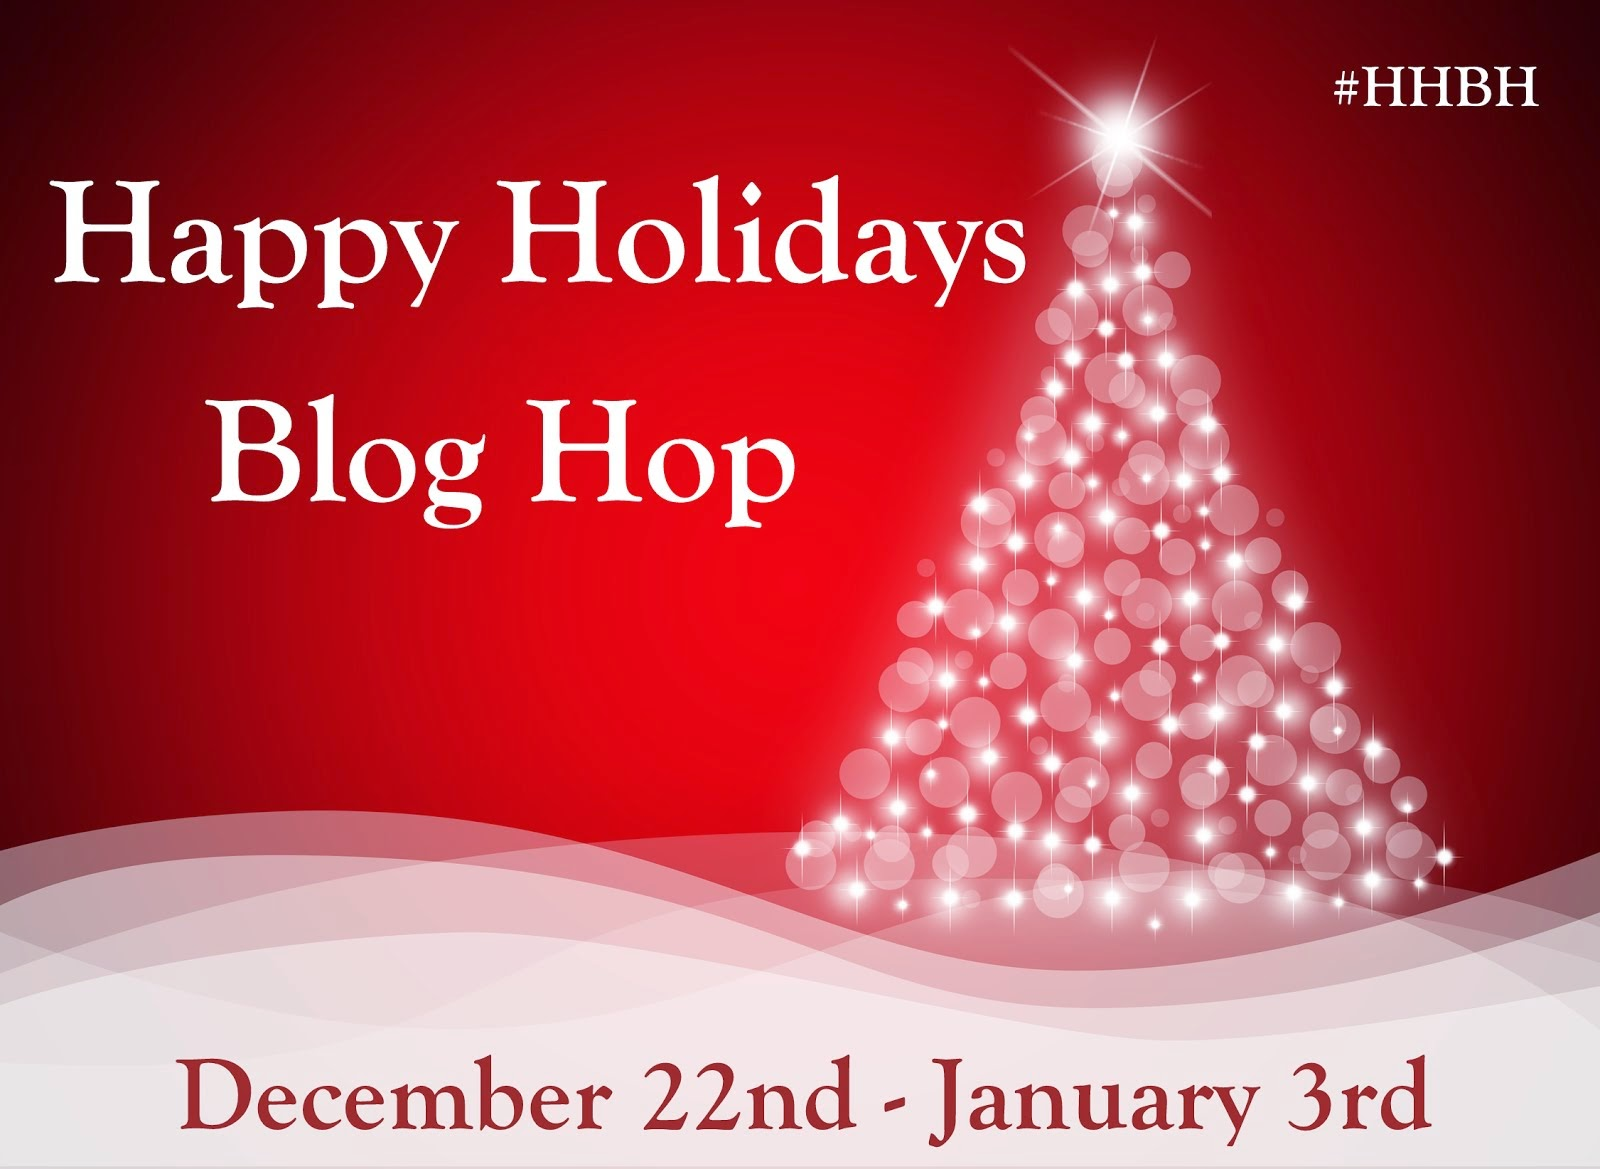 Happy Holidays Blog Hop